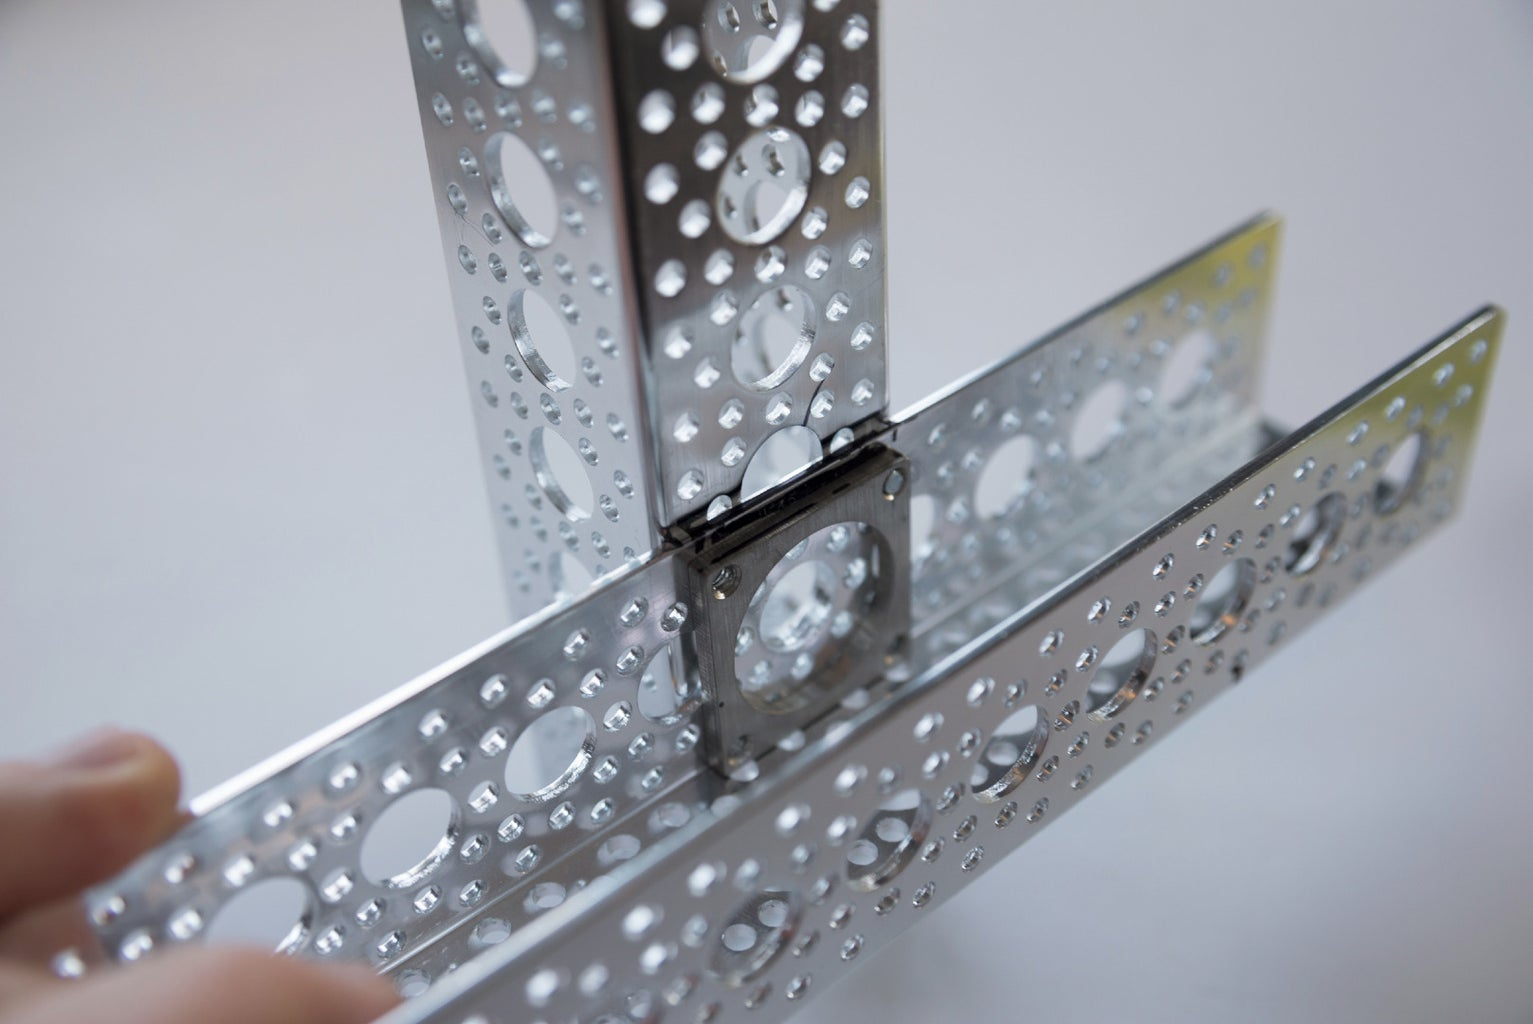 Attach the Aluminum Channels